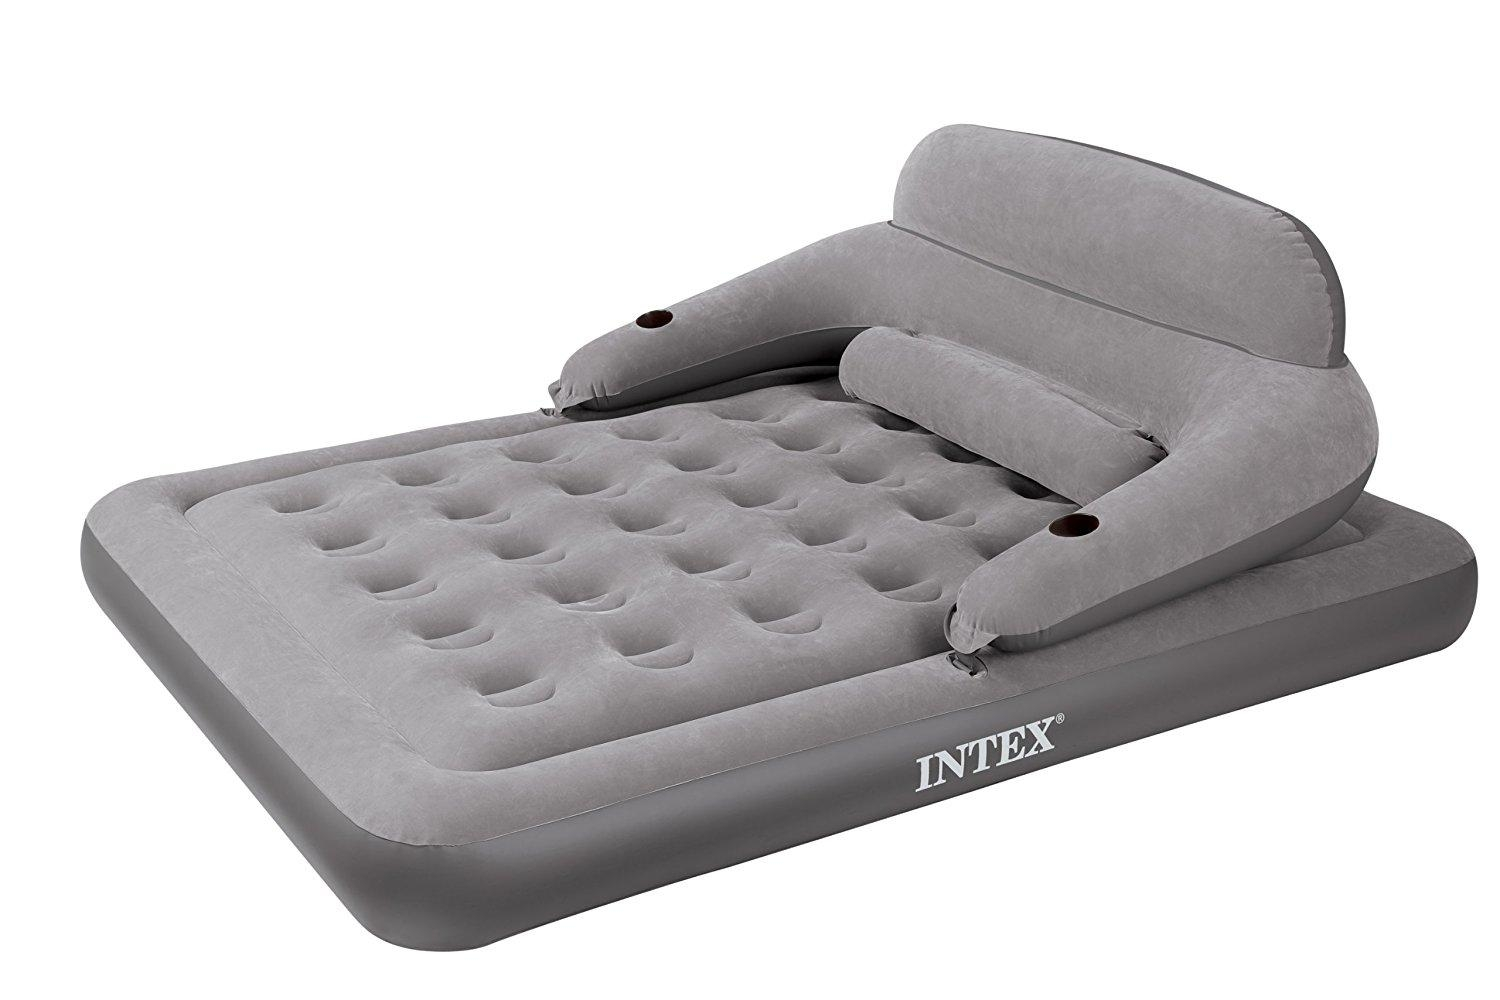 air mattress or sofa bed mitchell gold reviews 20 43 choices of intex beds ideas